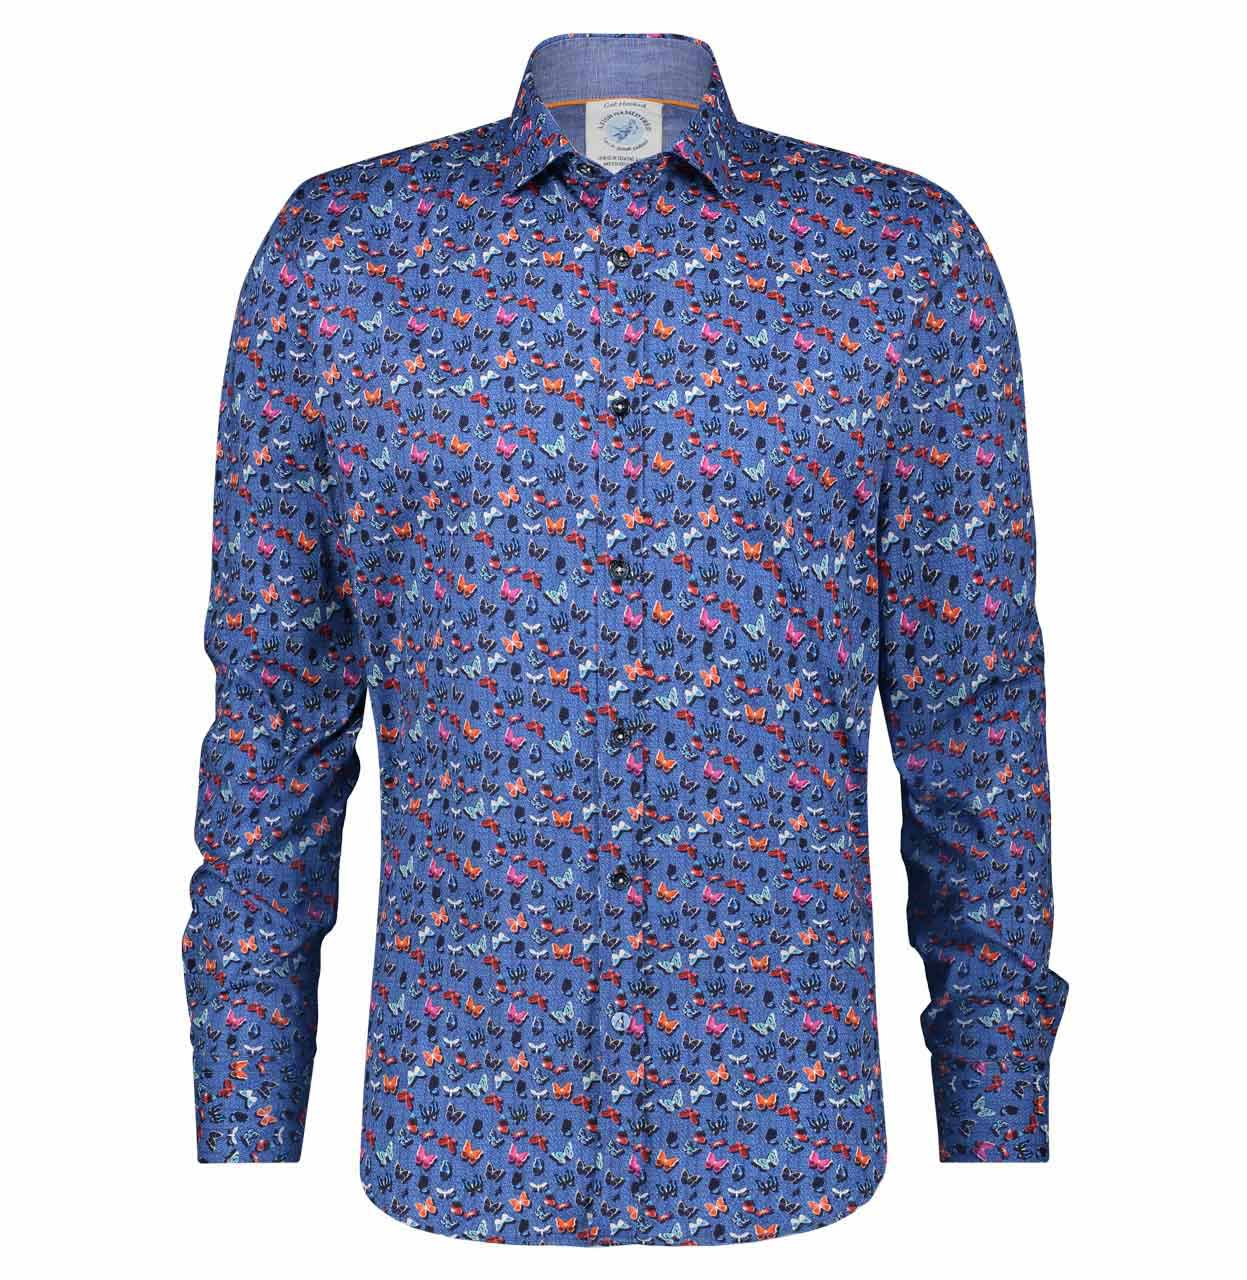 A Fish named Fred Shirt 22.01.011 Blue 22.01.011 blauw Maat XXL